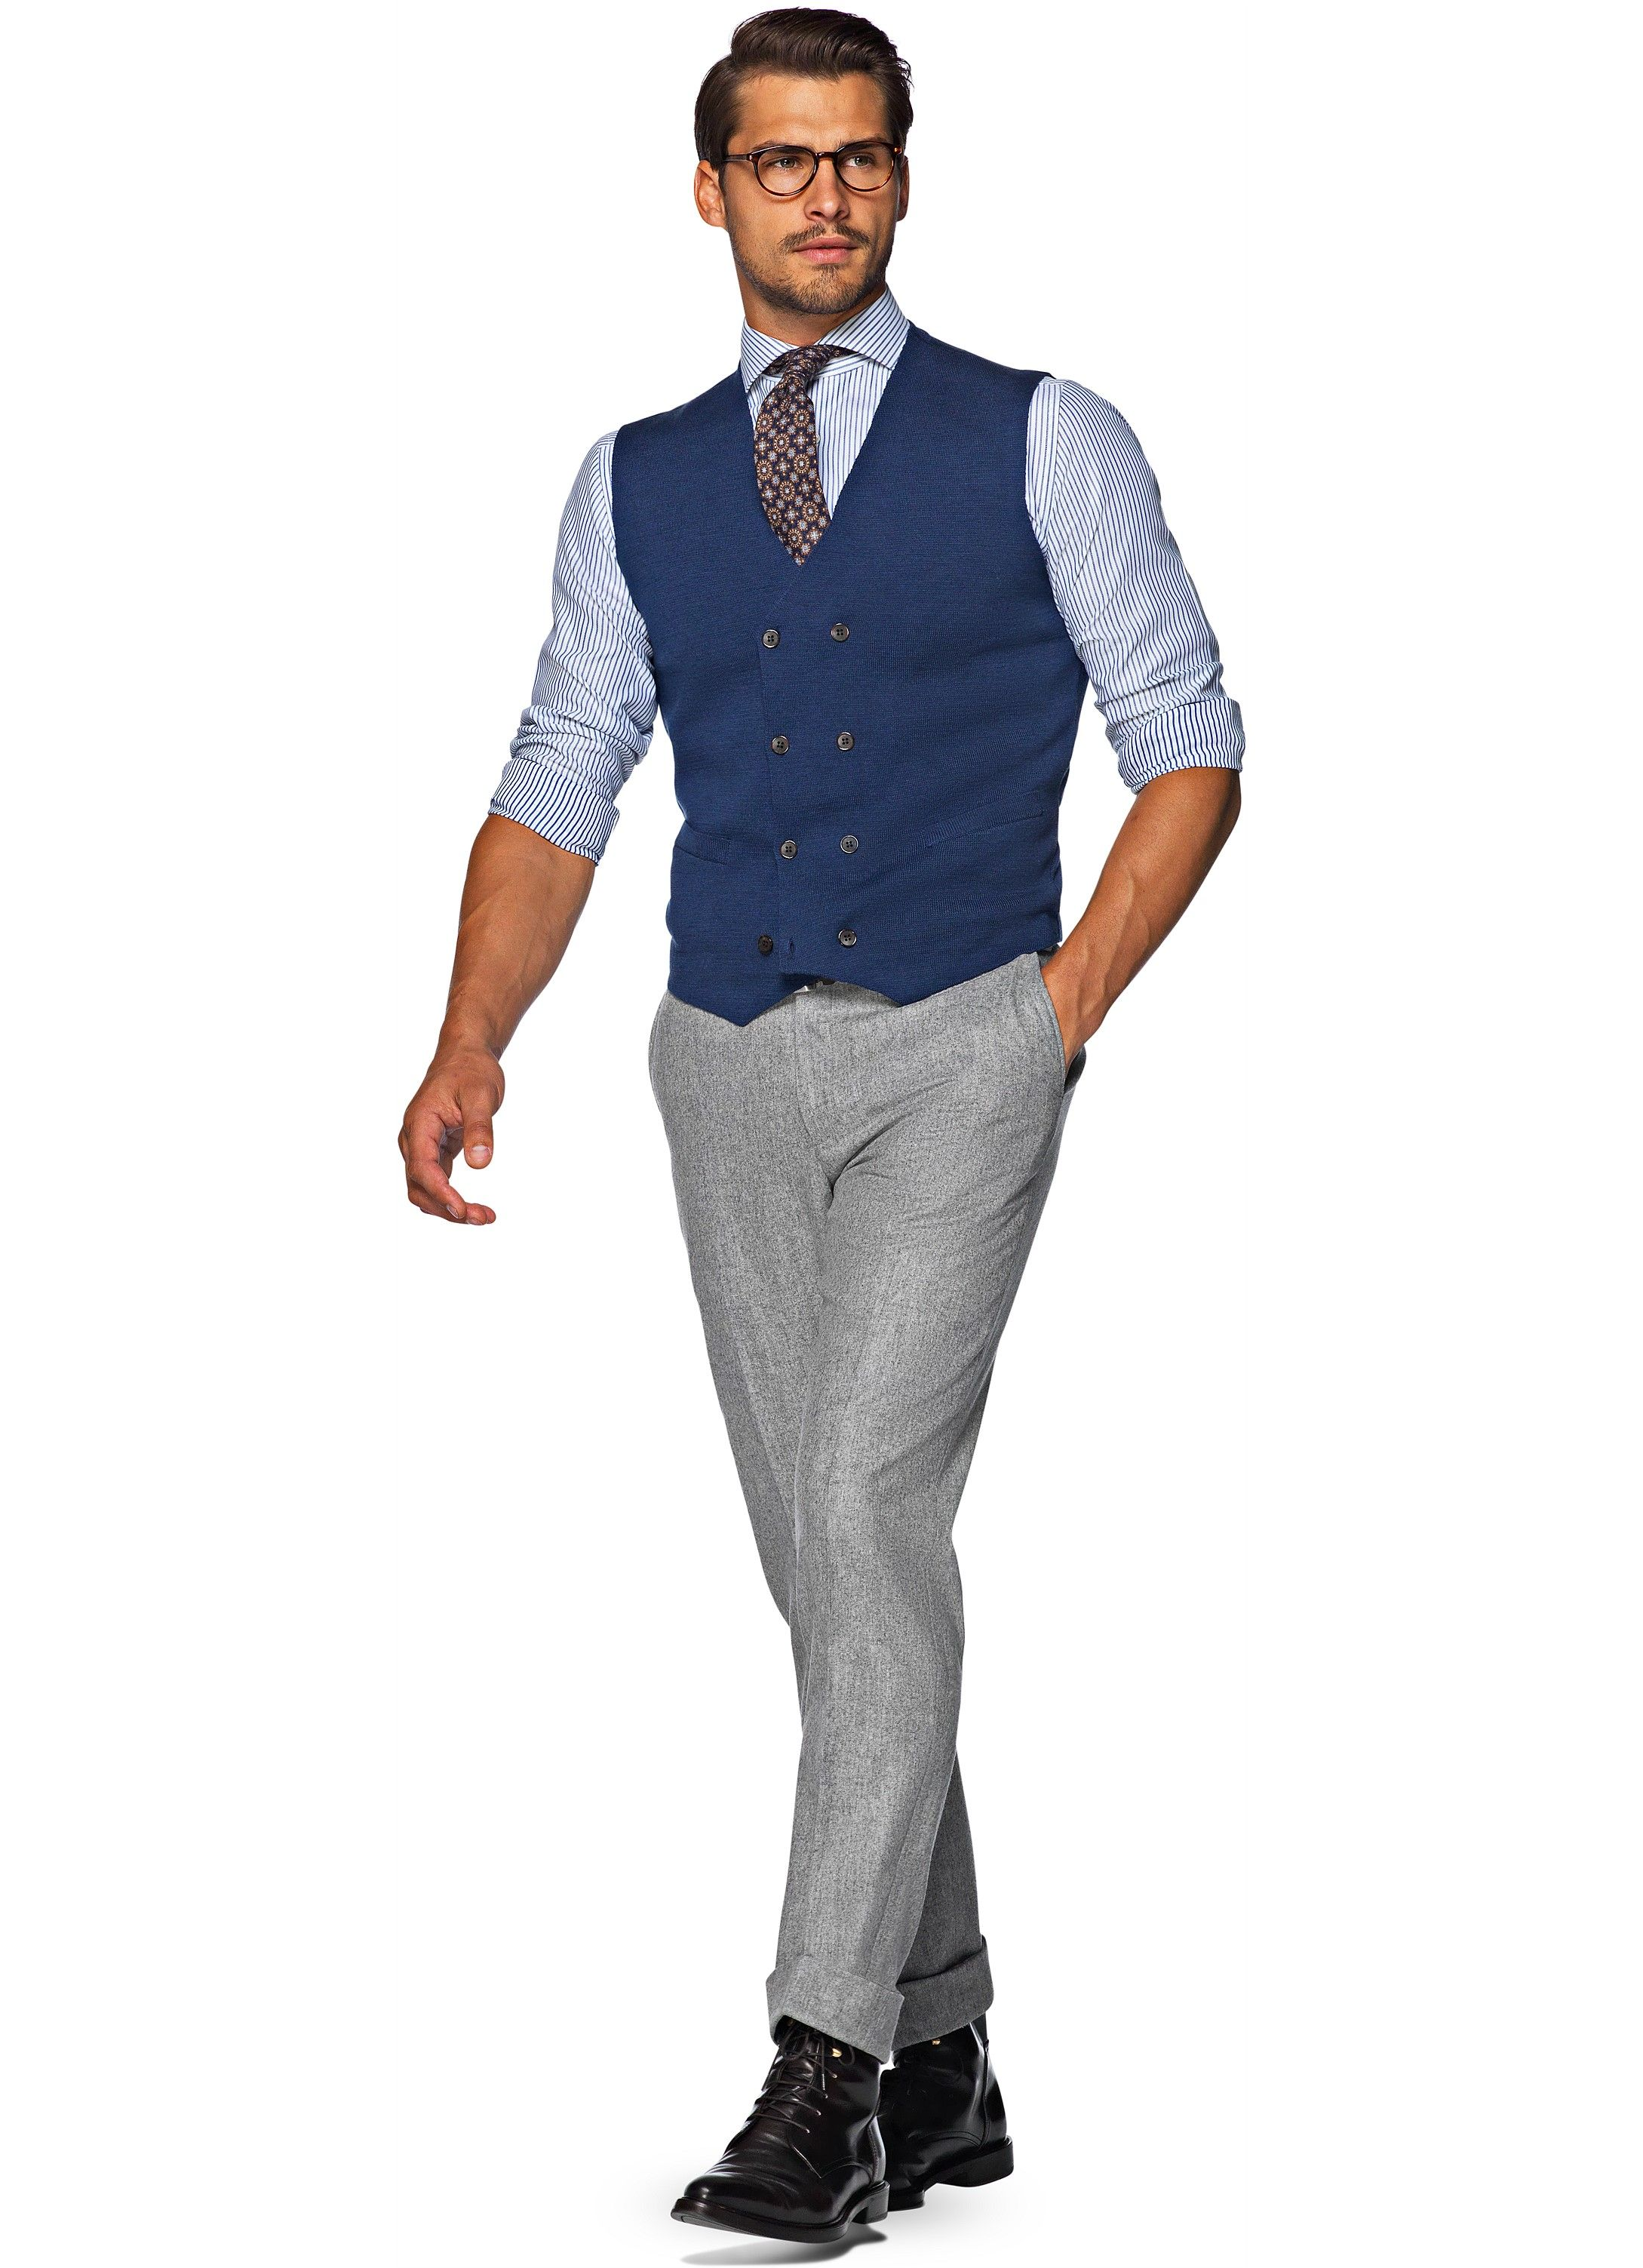 Welp Knitted Waistcoat Blu Sw564   Suitsupply Online Store - Credo NH-41